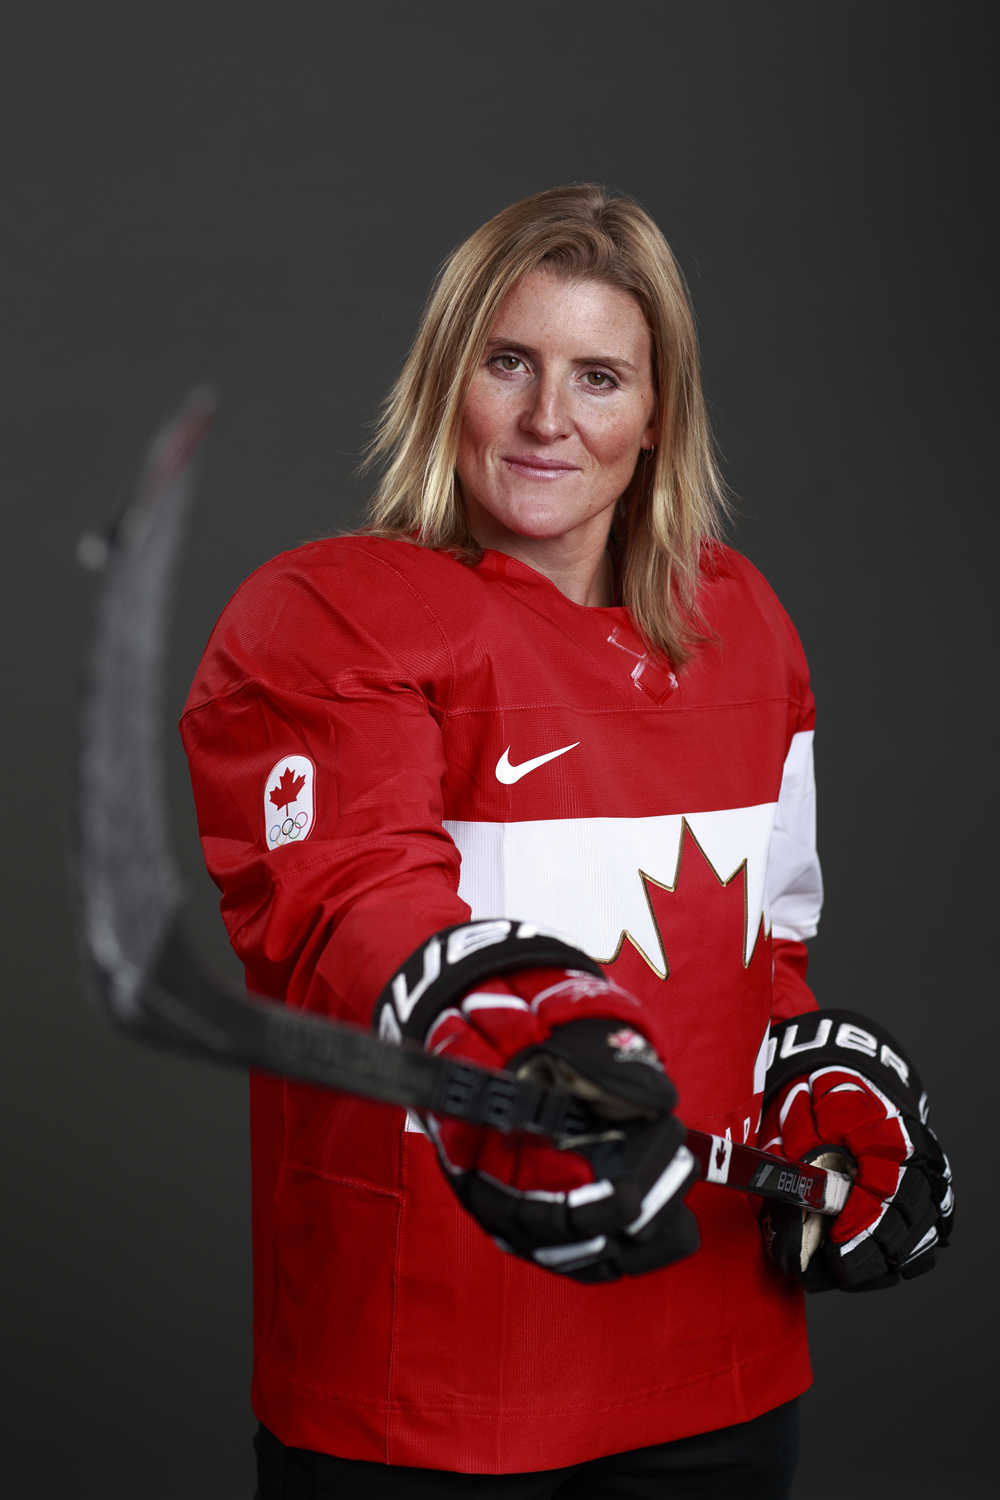 Prince George Free Press » Wickenheiser to carry flag for Canada at Sochi opening ceremonies